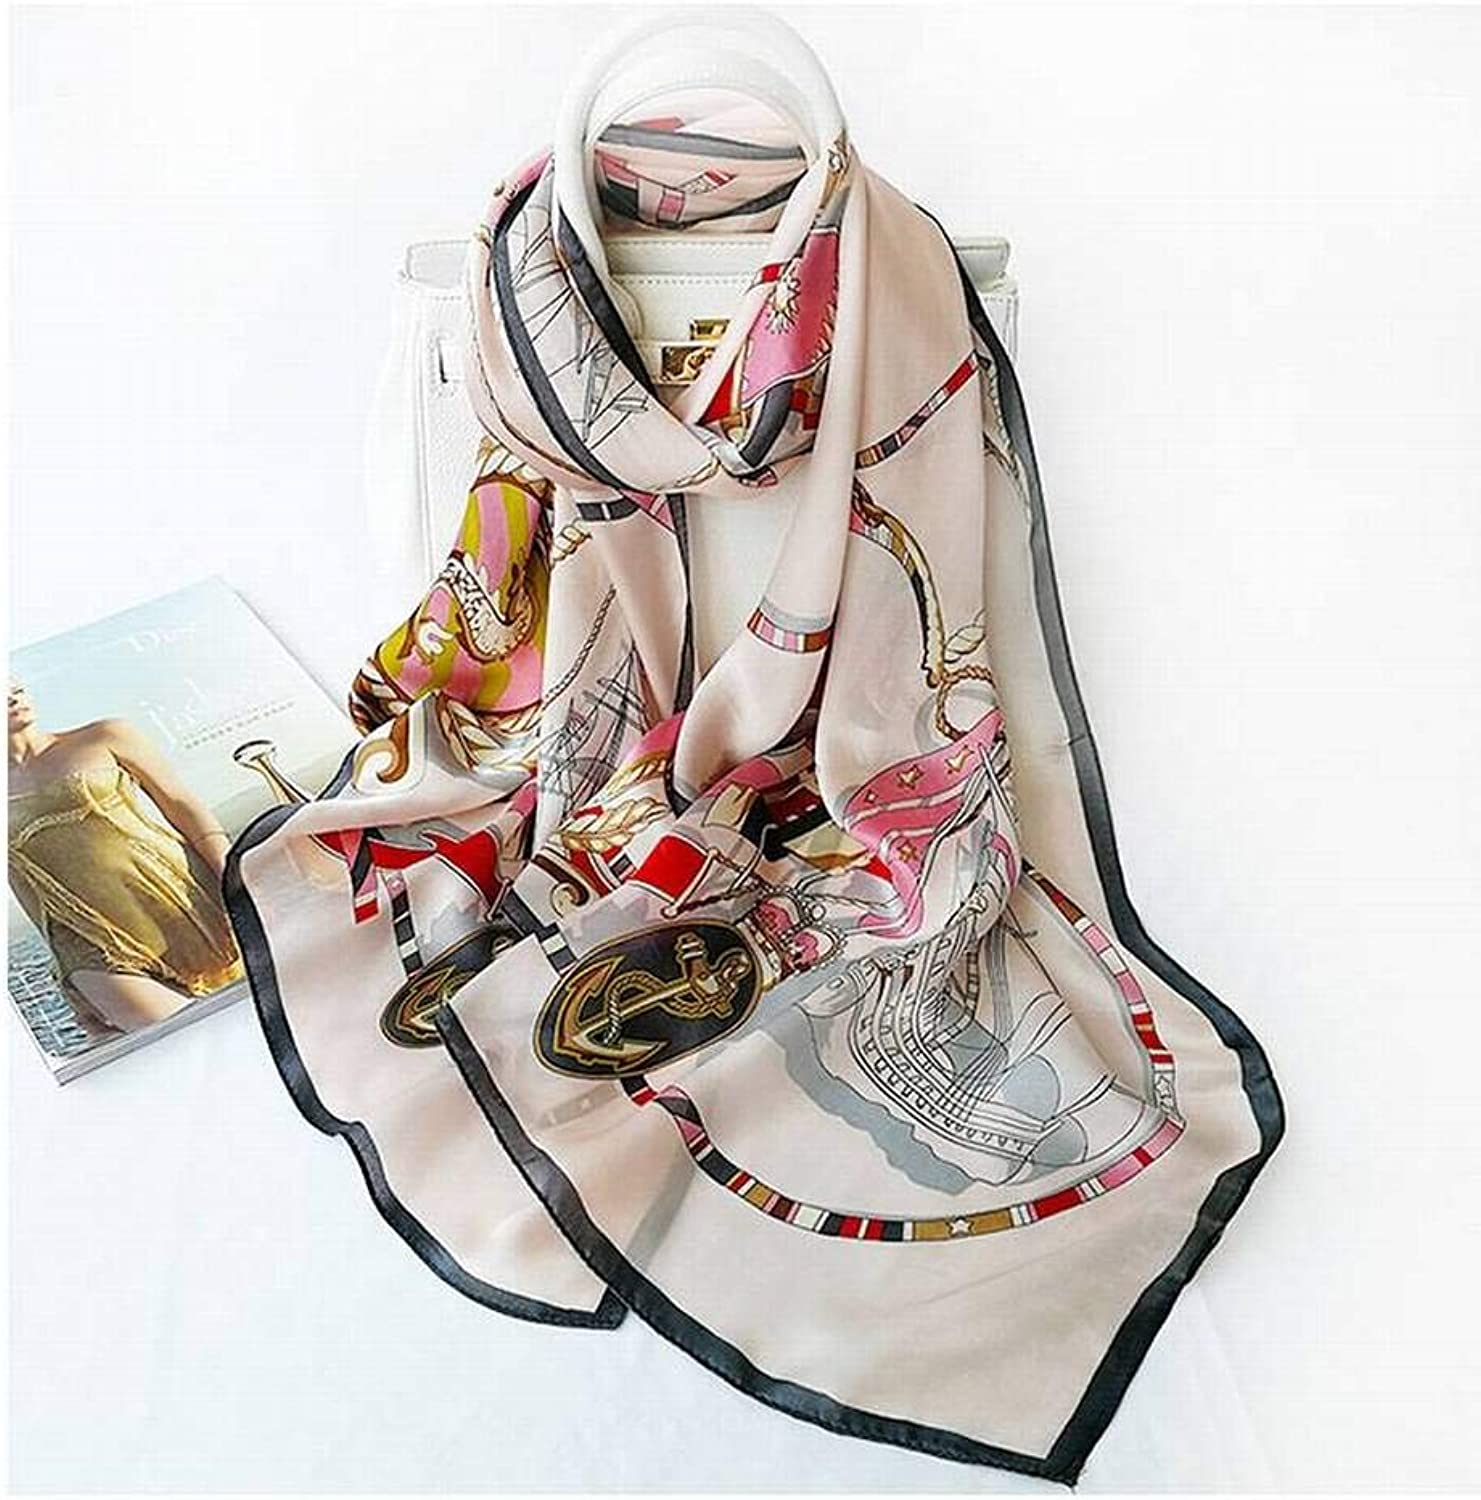 WJS Elegant Ladies, Cgreymere, Women, Warm, Plaid, Long, Autumn and Winter, Outdoor, Multi-Functional Fgreyion, Wild, Warm, Shawl, Scarf, Gift